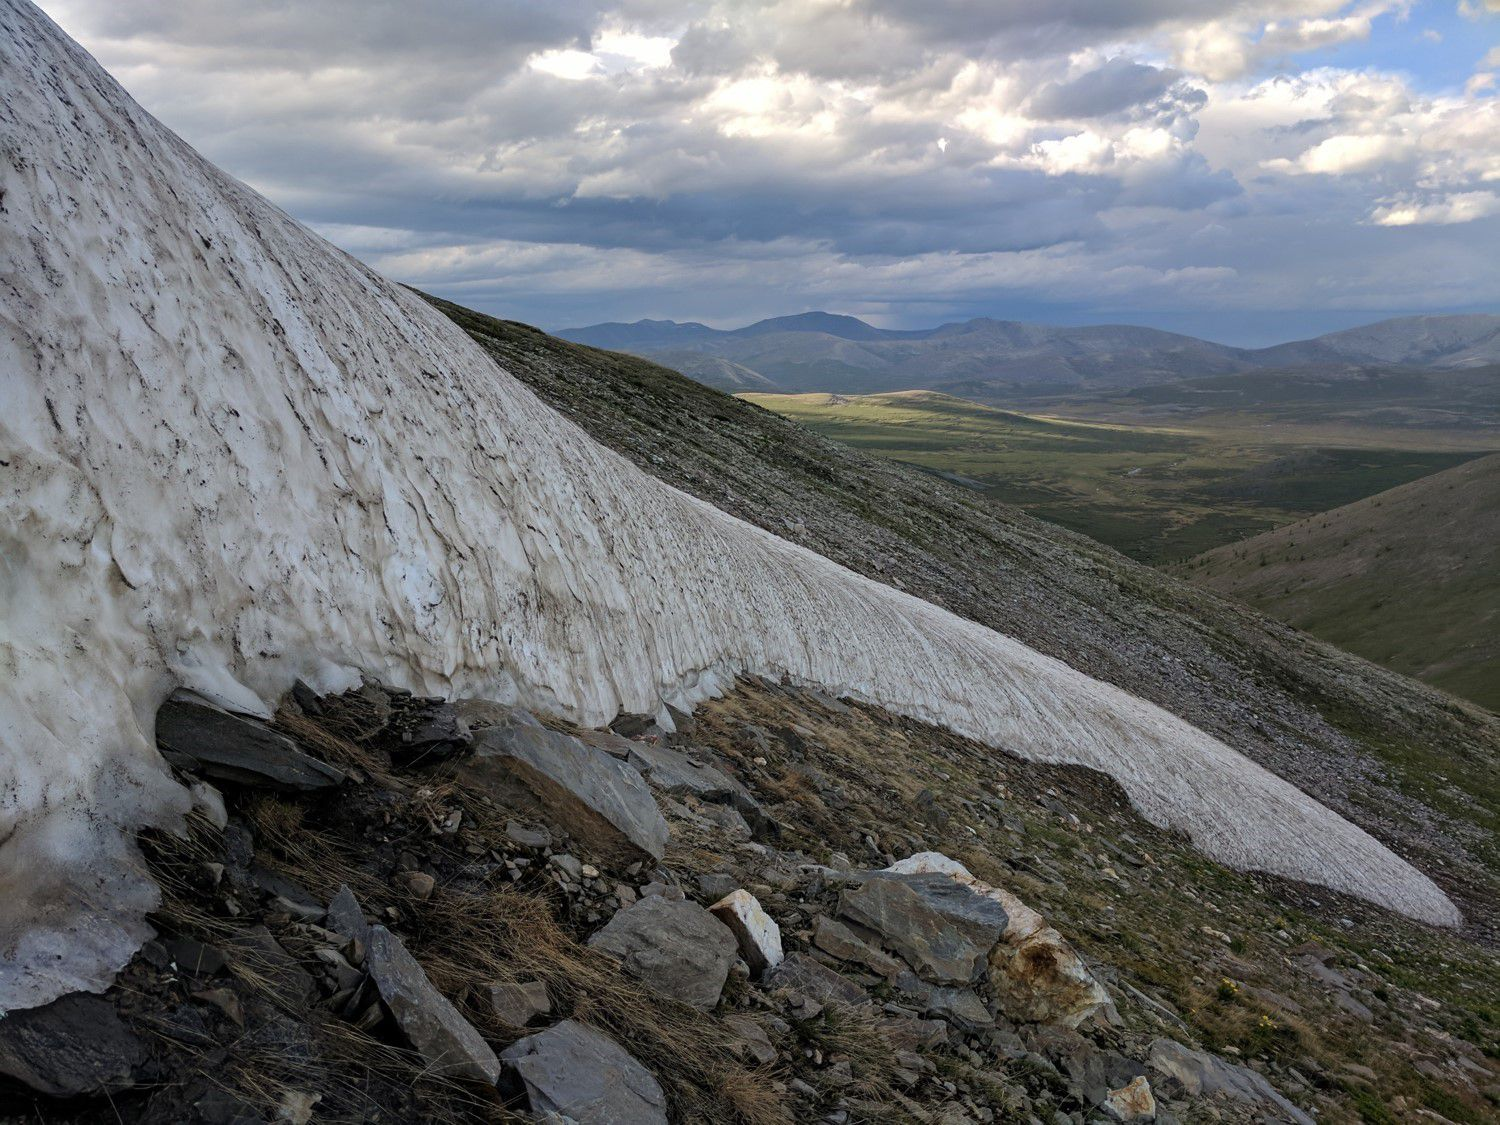 Archaeologists Race to Preserve Artifacts as the Ice Melts in Mongolia